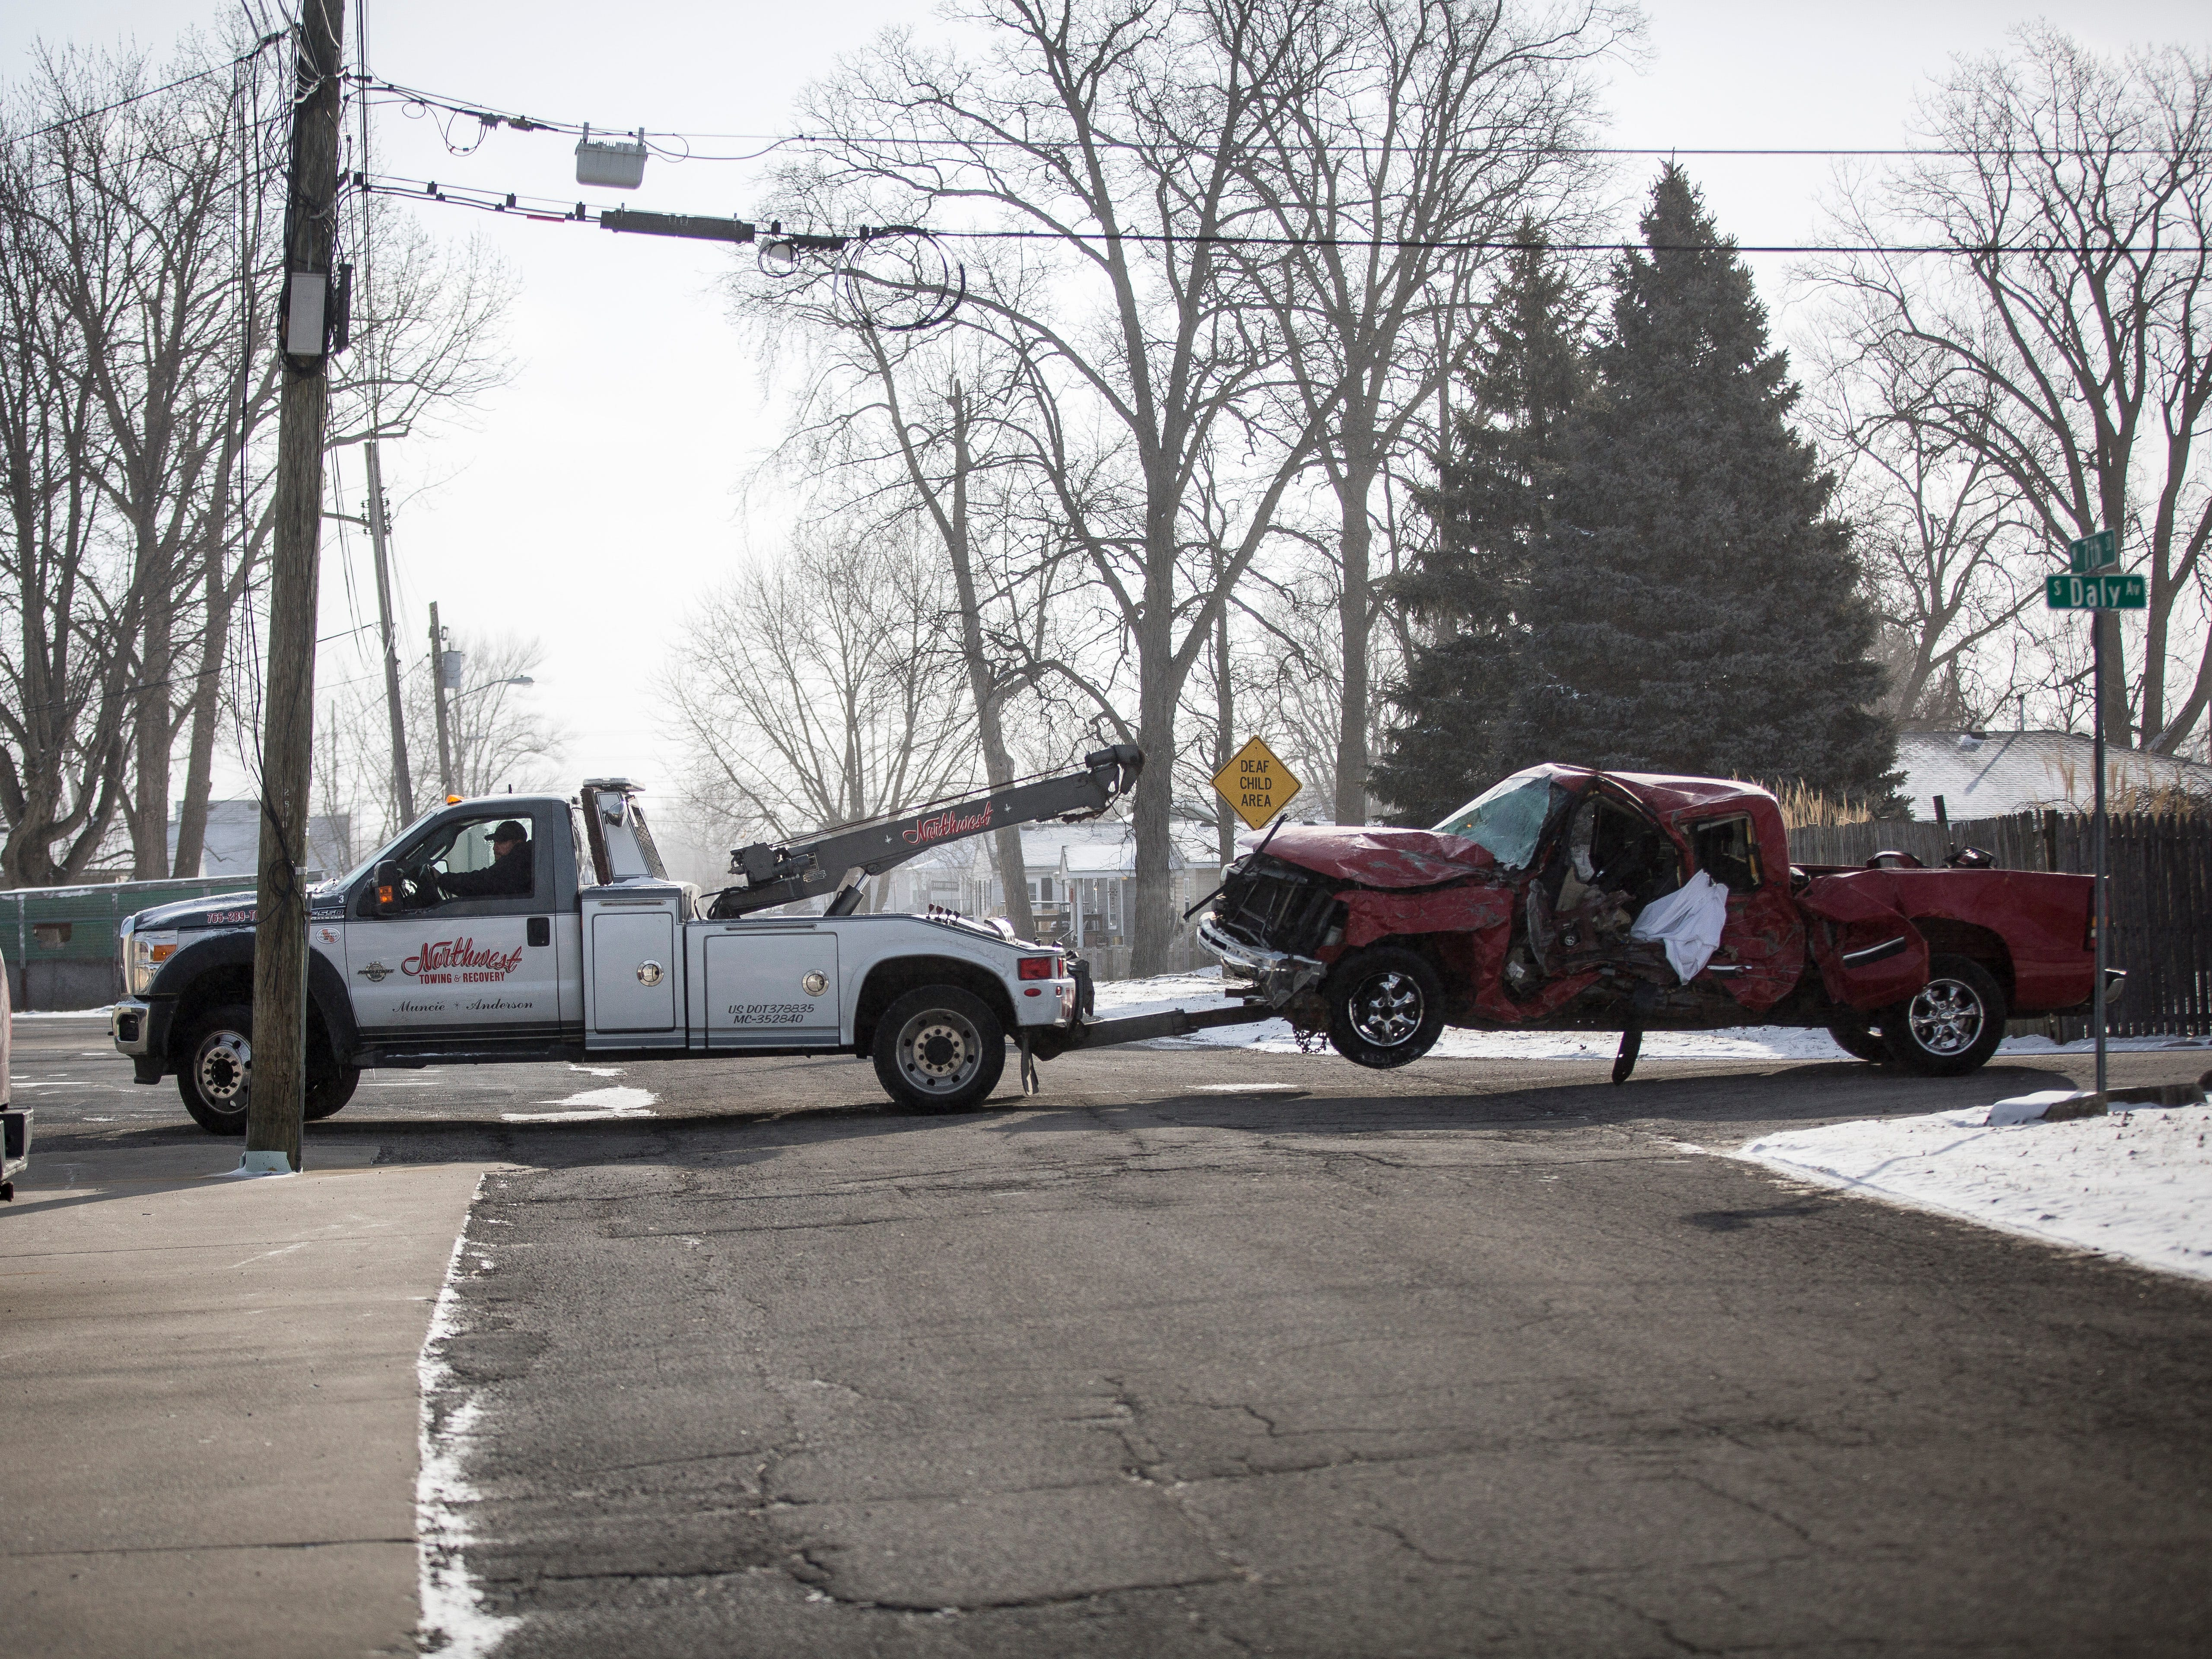 A truck crushed by a train is towed away from the scene of a fatal accident near Batavia and Kilgore avenues. Delaware County Coroner Rick Howell identified the victim as 34-year-old Graham S. Highley of Yorktown.